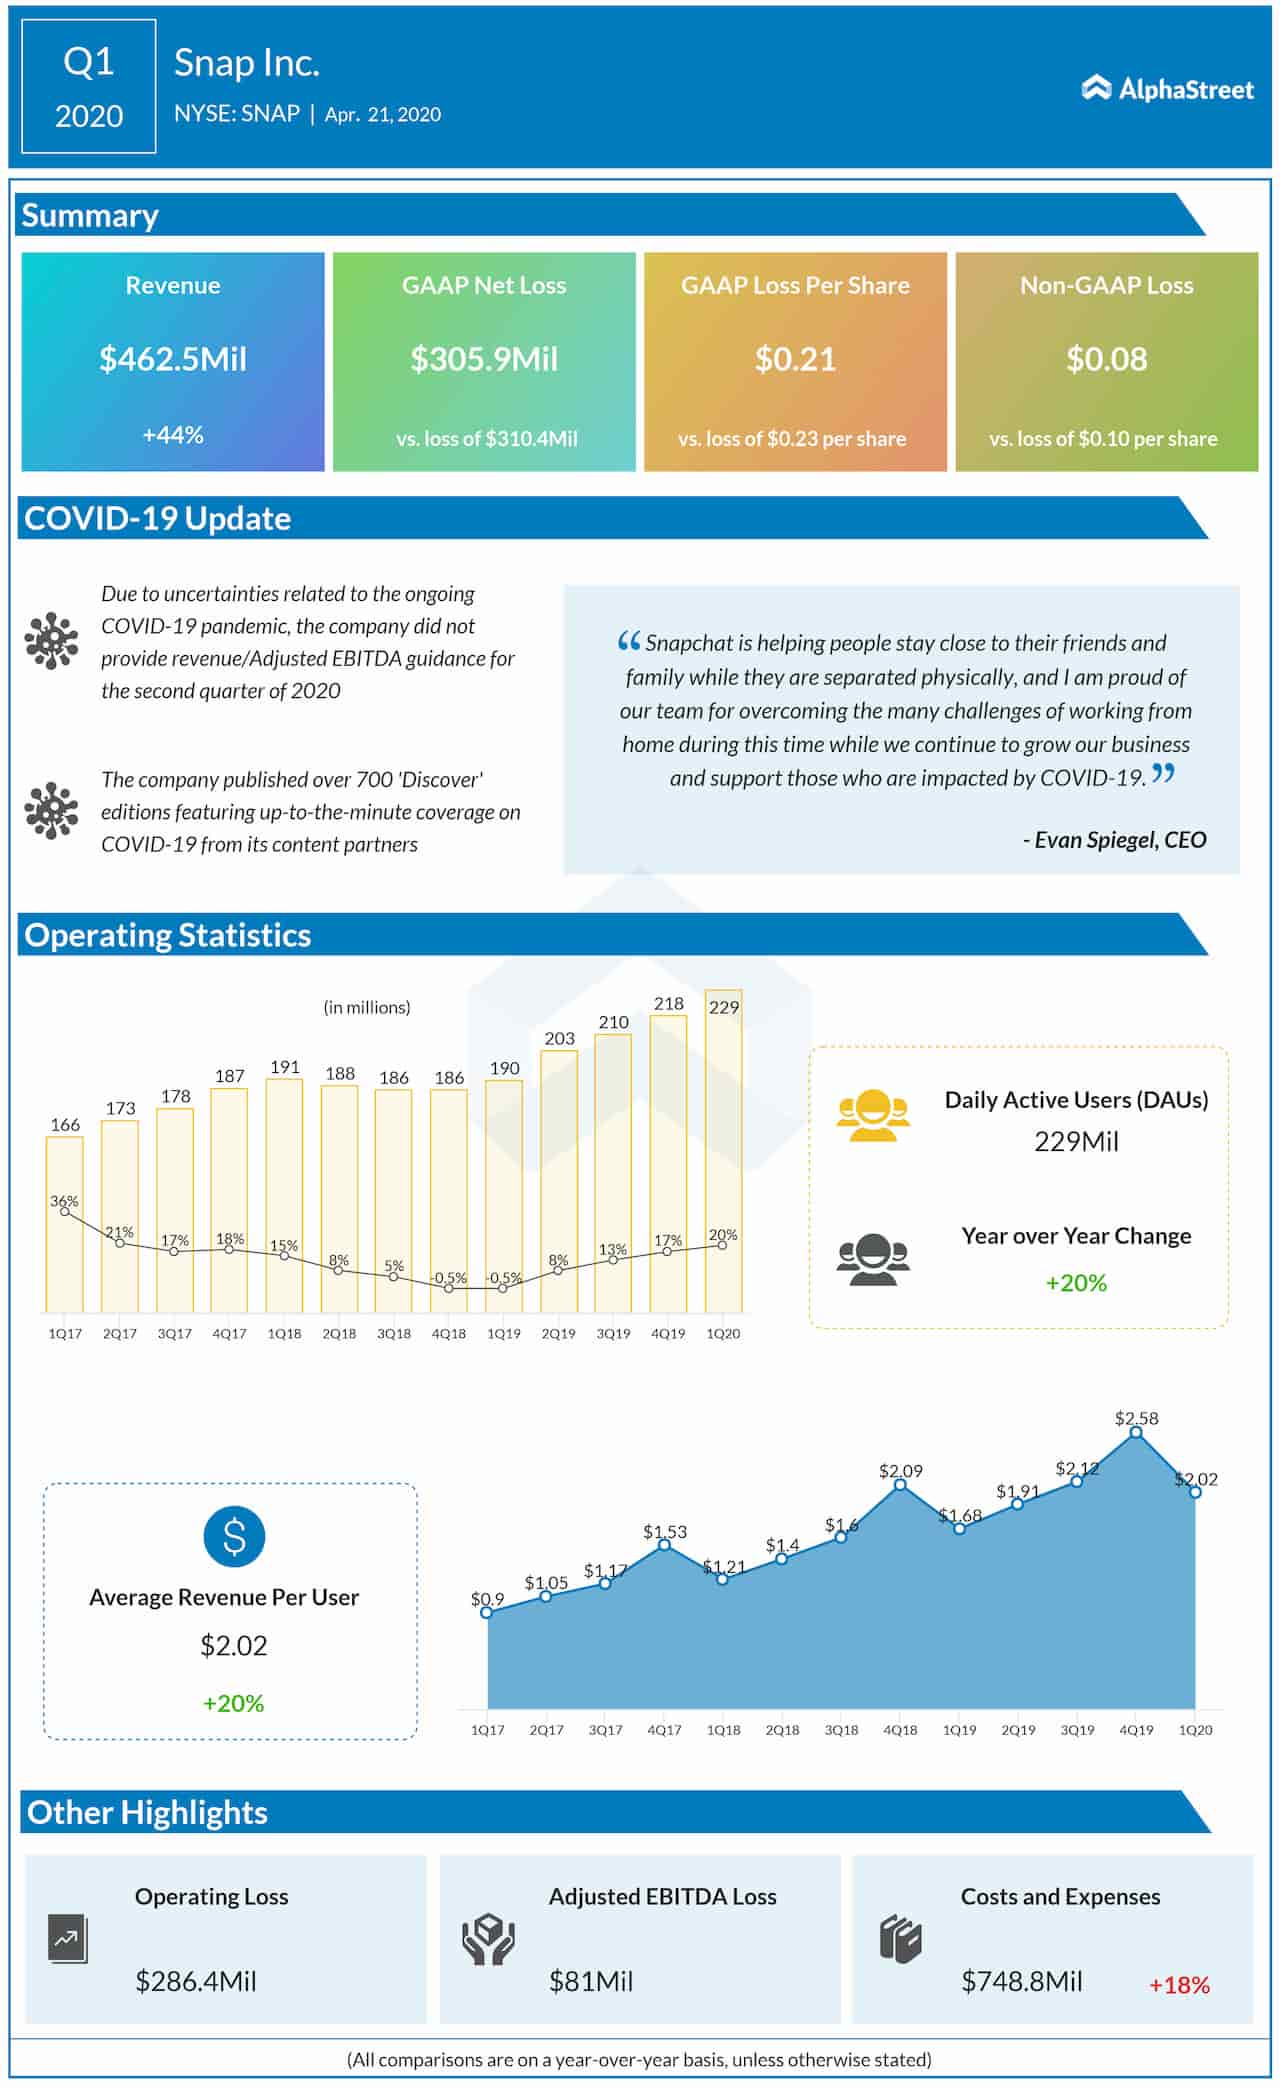 Snap Inc. Q1 2020 Earnings Infographic